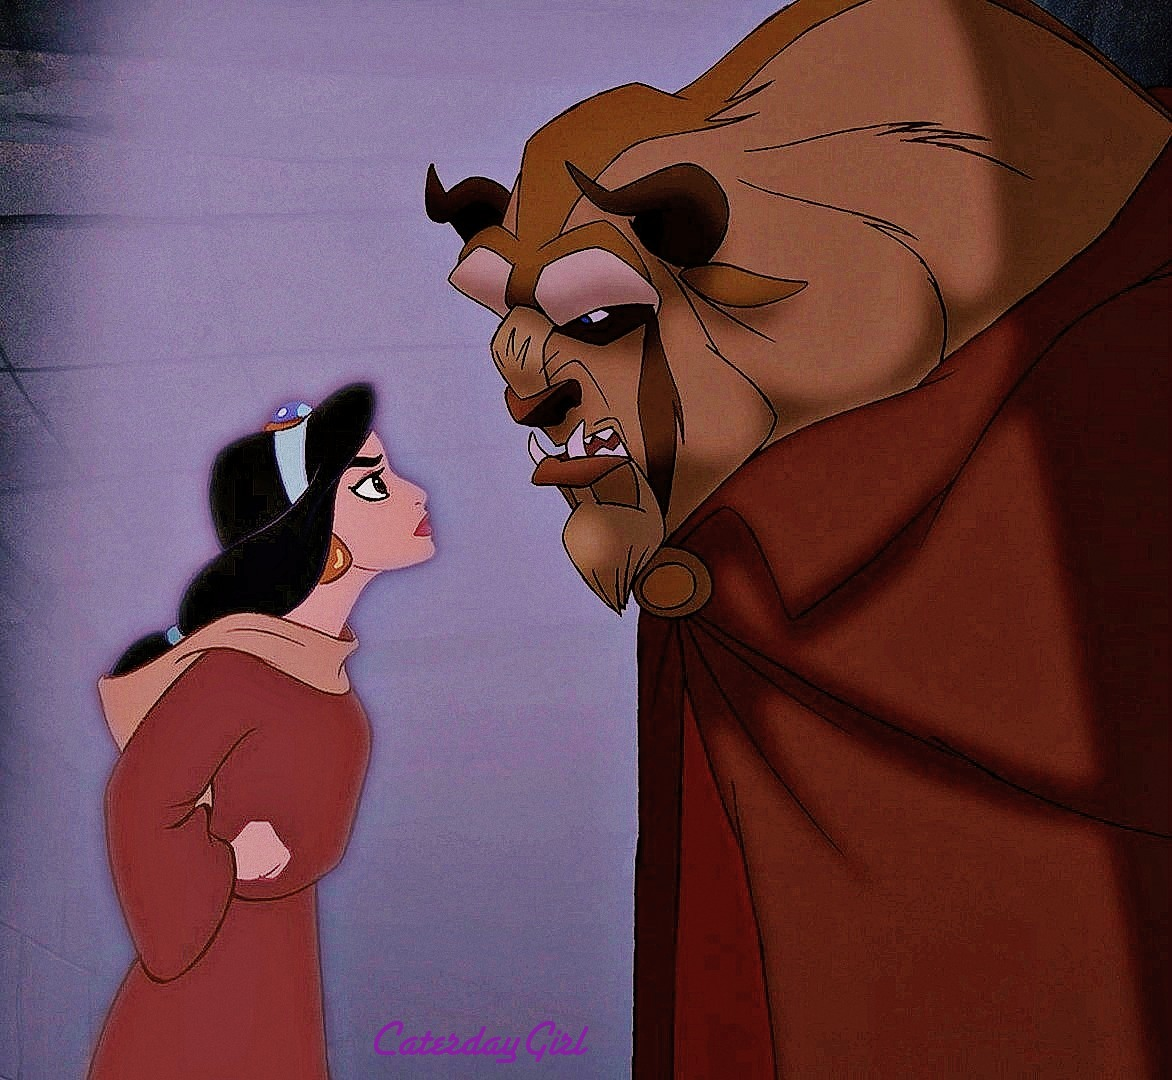 Beauty and the beast crossover disney-7971